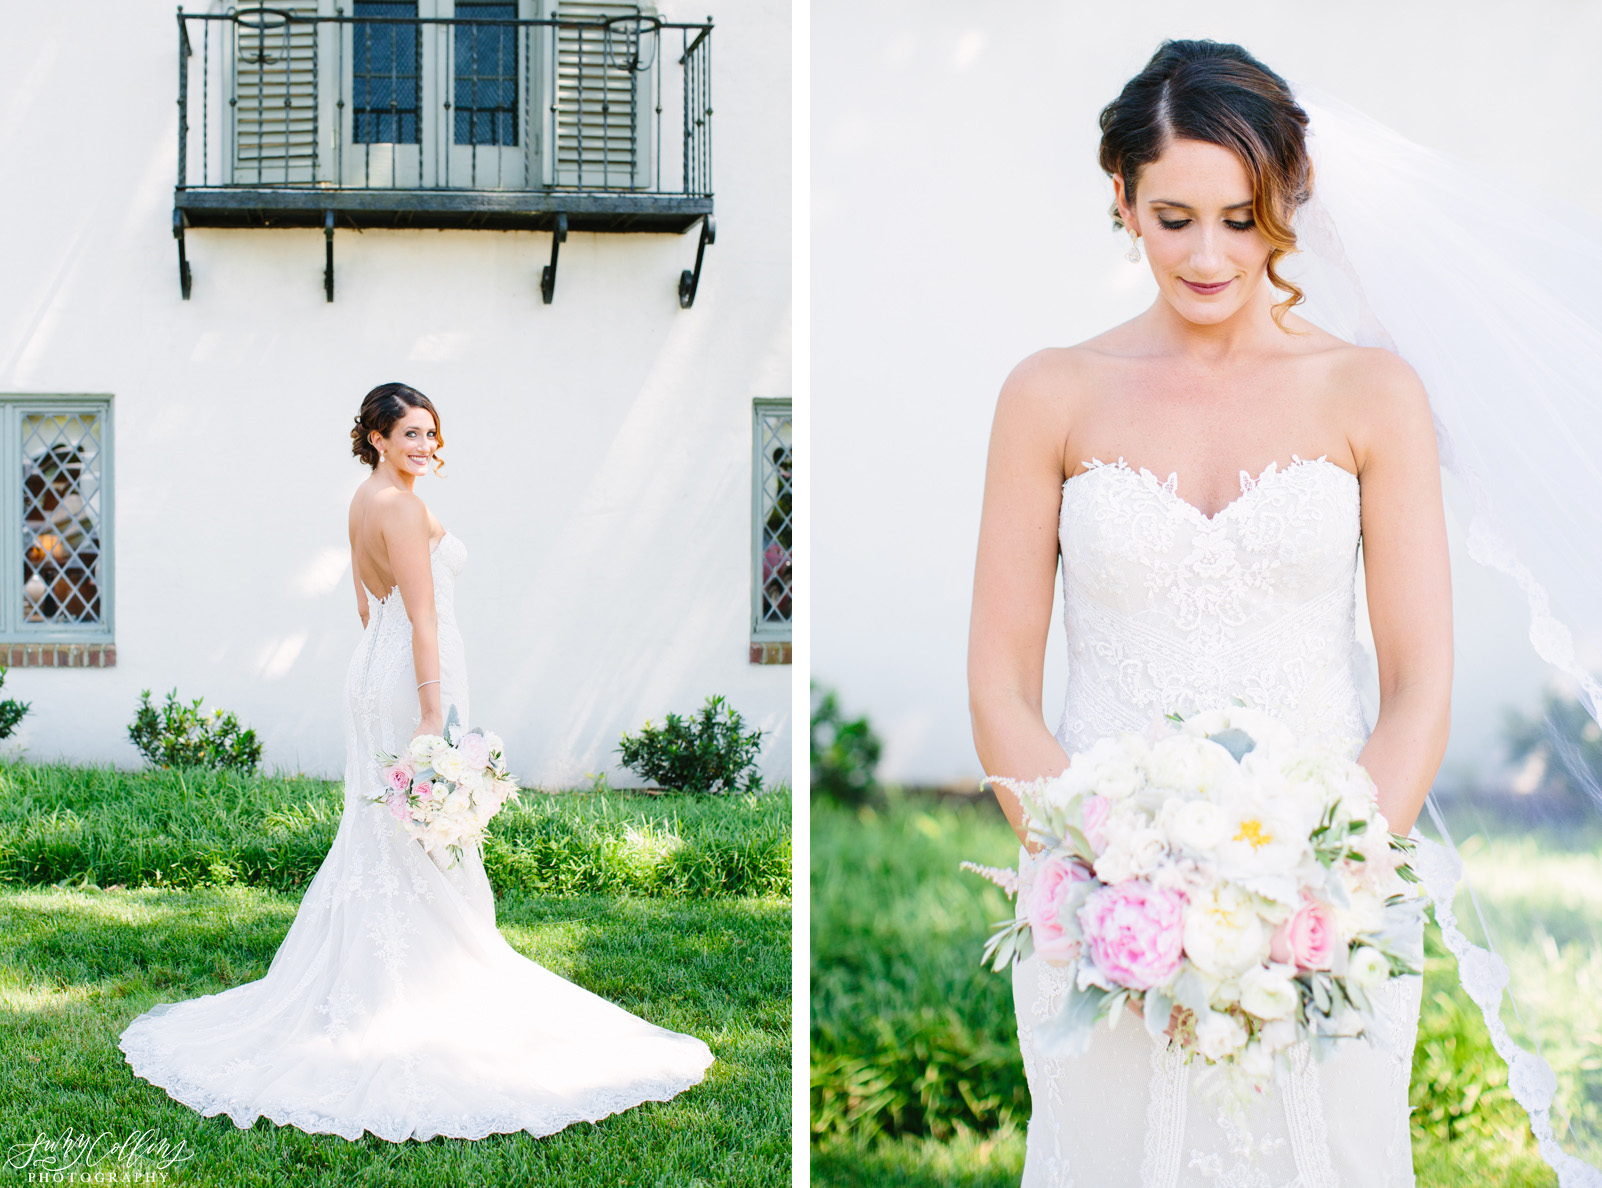 poses, indoor, romantic, spring, light and airy, natural light, ideas, passion, artistic, creative, inspiration, editorial, art, lighting, love, Knoxville, Tennessee, Cherokee country club, vibrant, colorful, bright, bride, bridal portraits, flowers